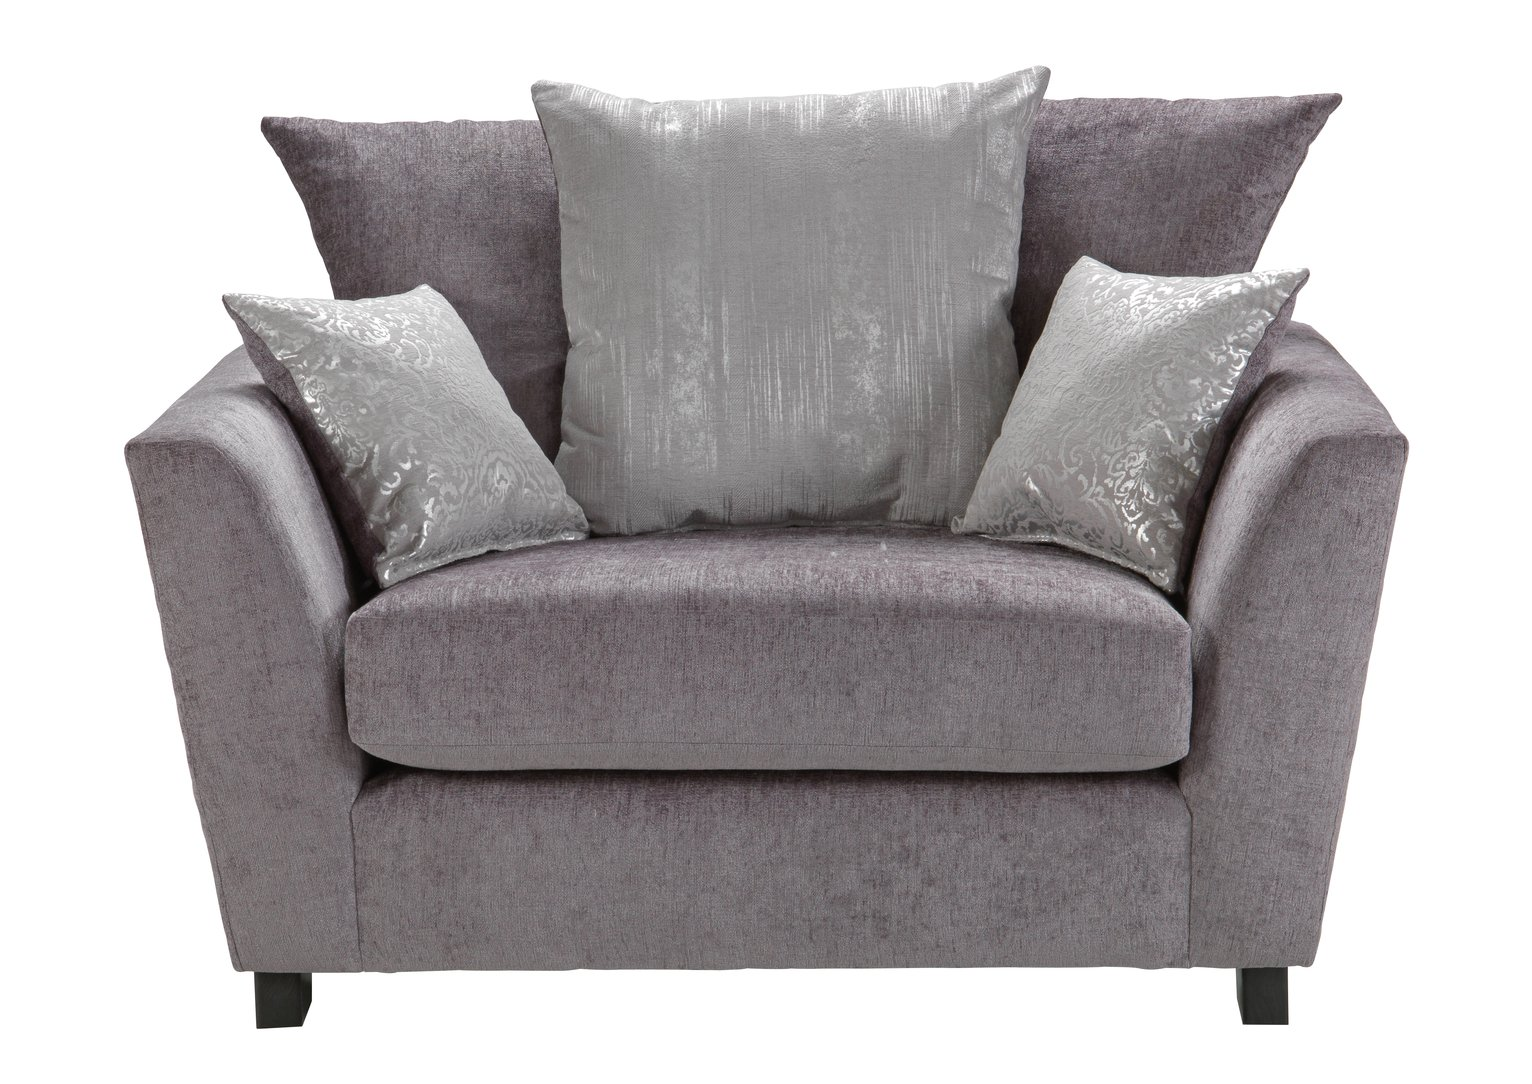 Argos Home Vivienne Fabric Cuddle Chair - Silver